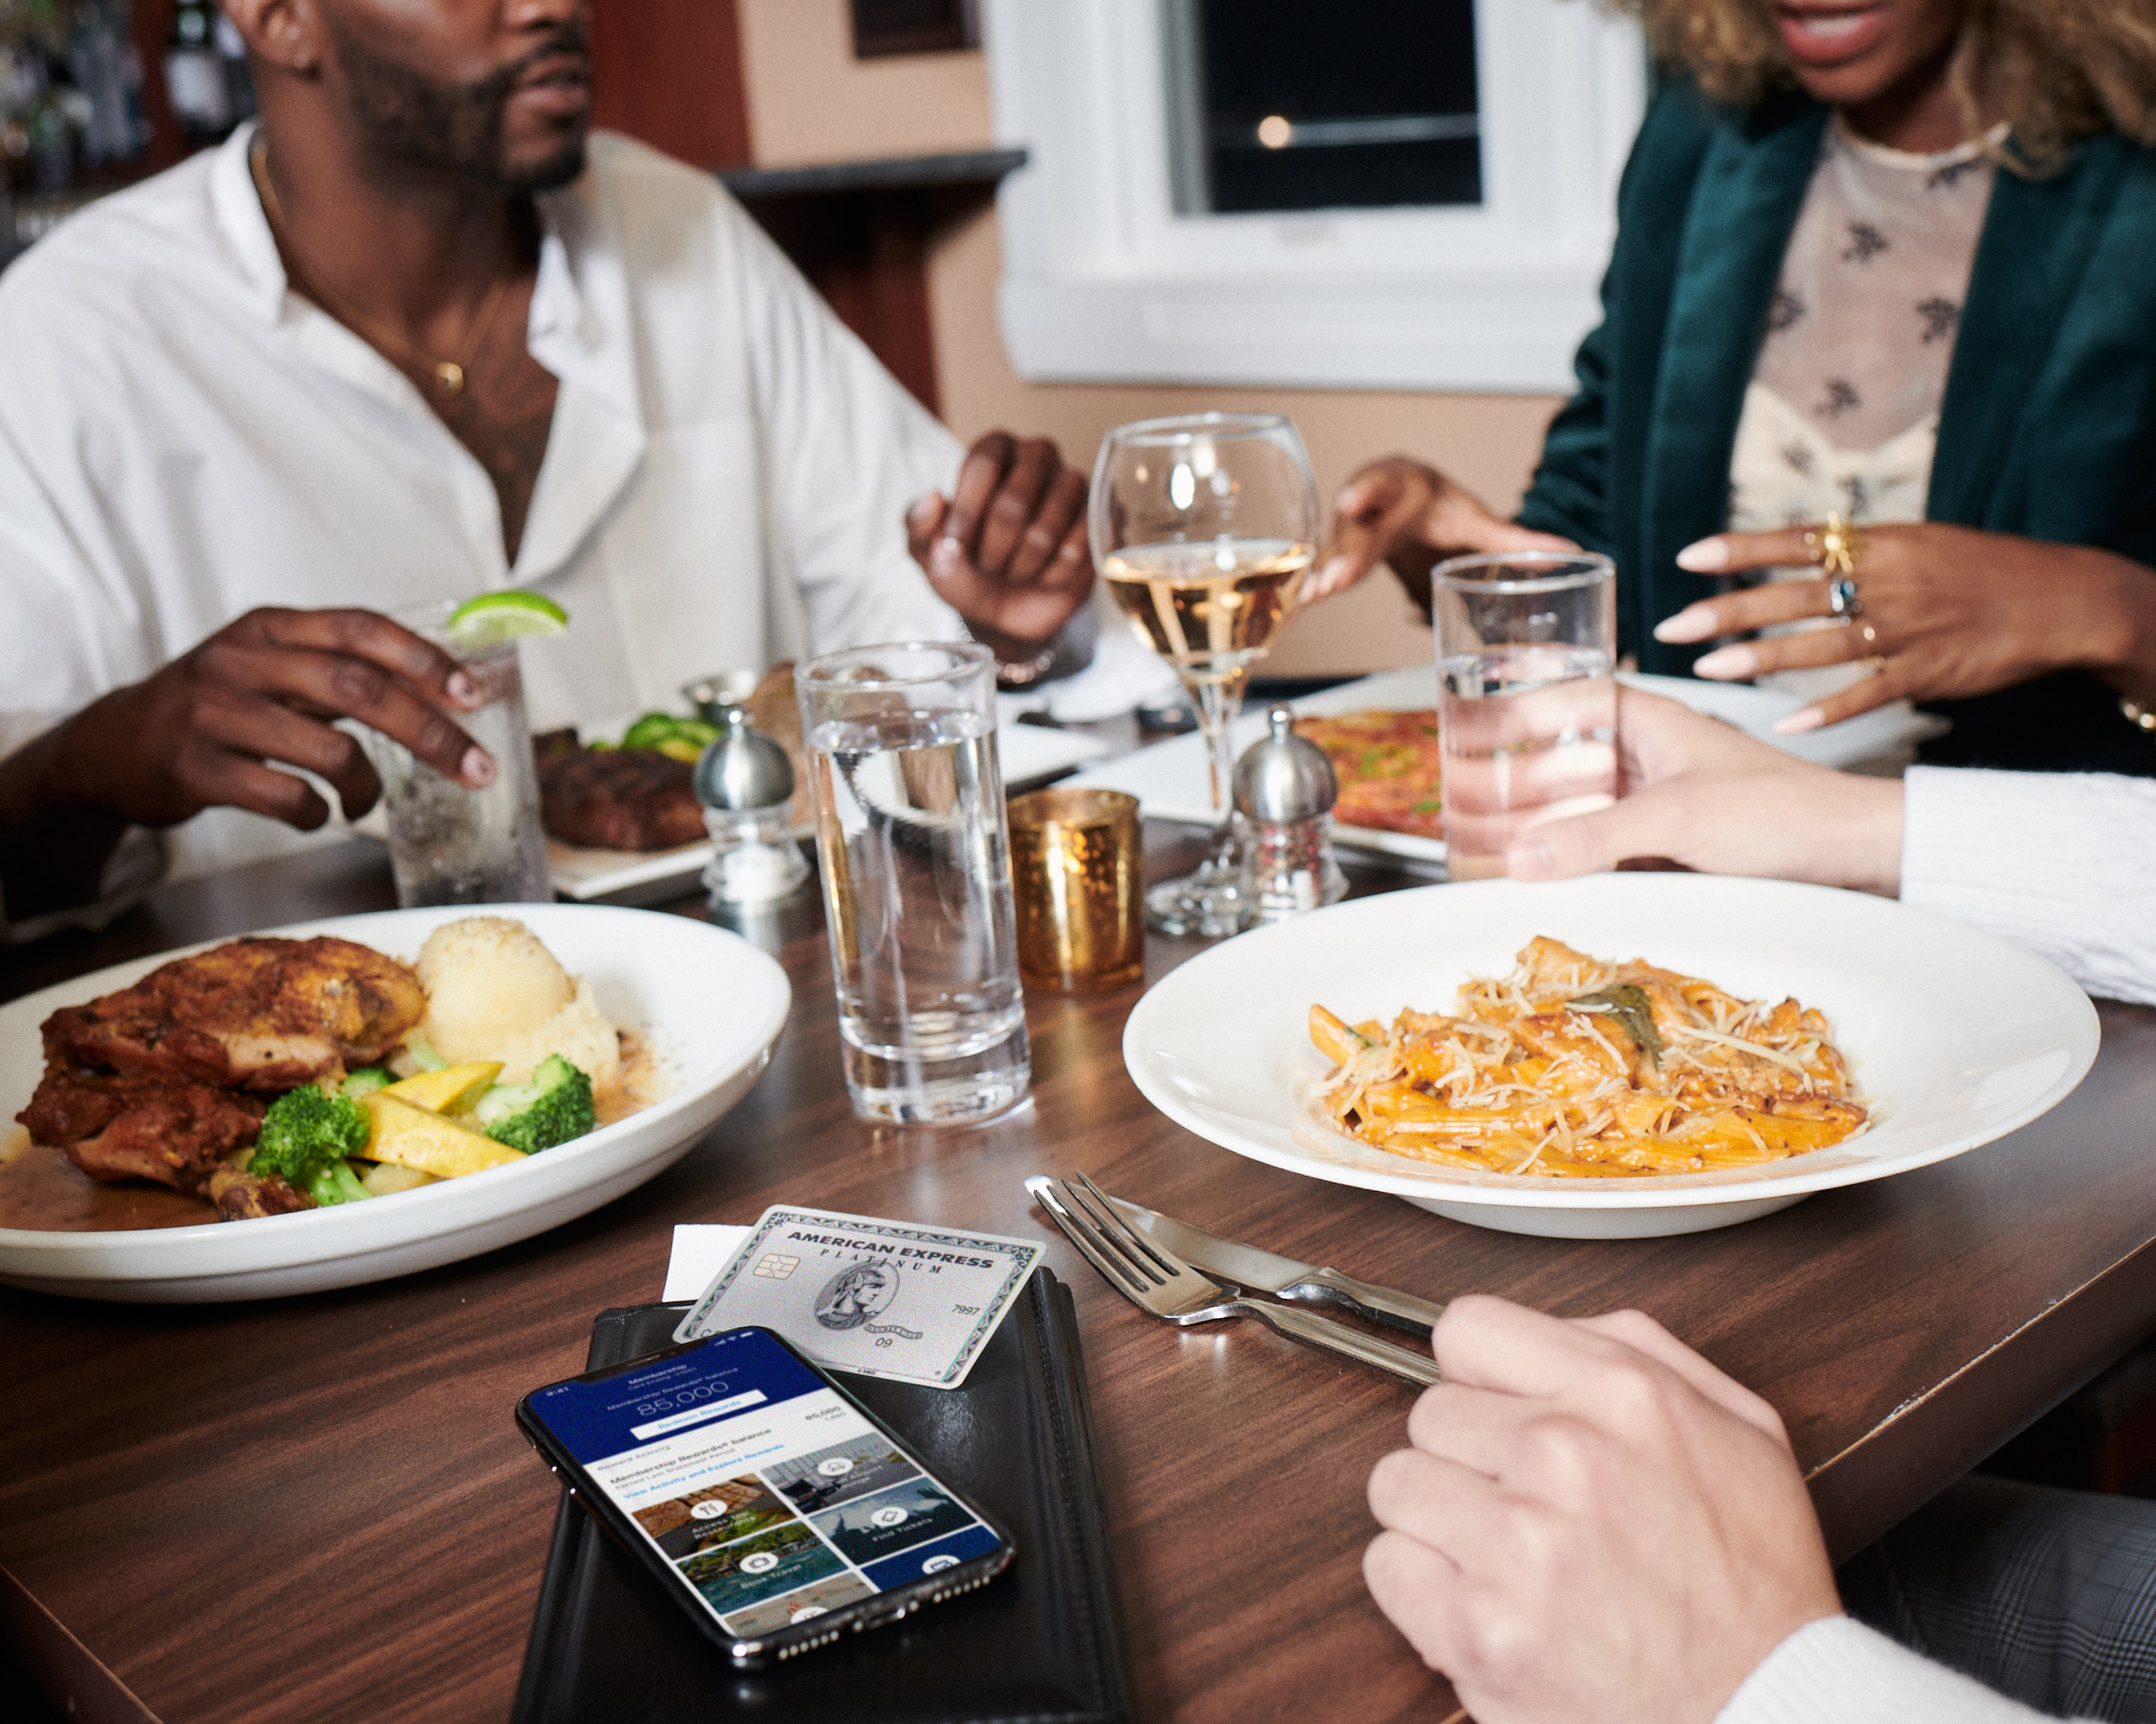 American Express launches new in-app restaurant reservation booking following its Resy acquisition | TechCrunch